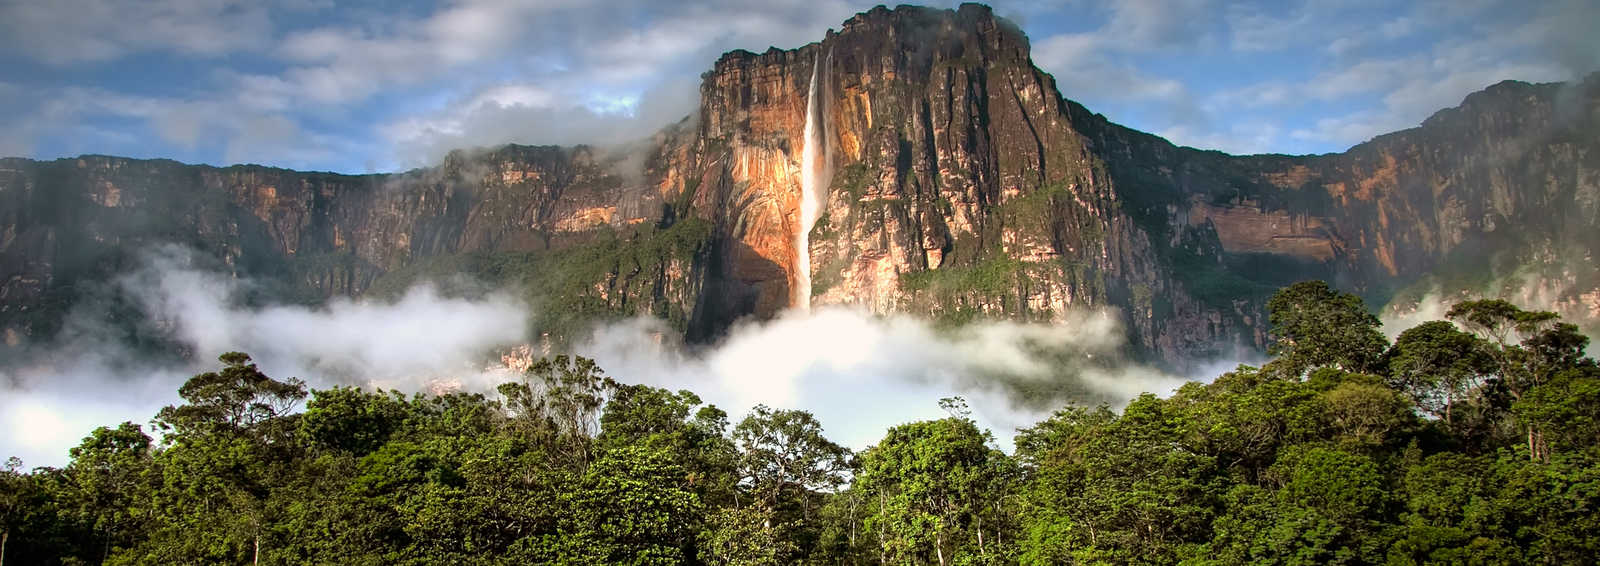 The highest waterfall in the world shot in the early morning, Venezuela